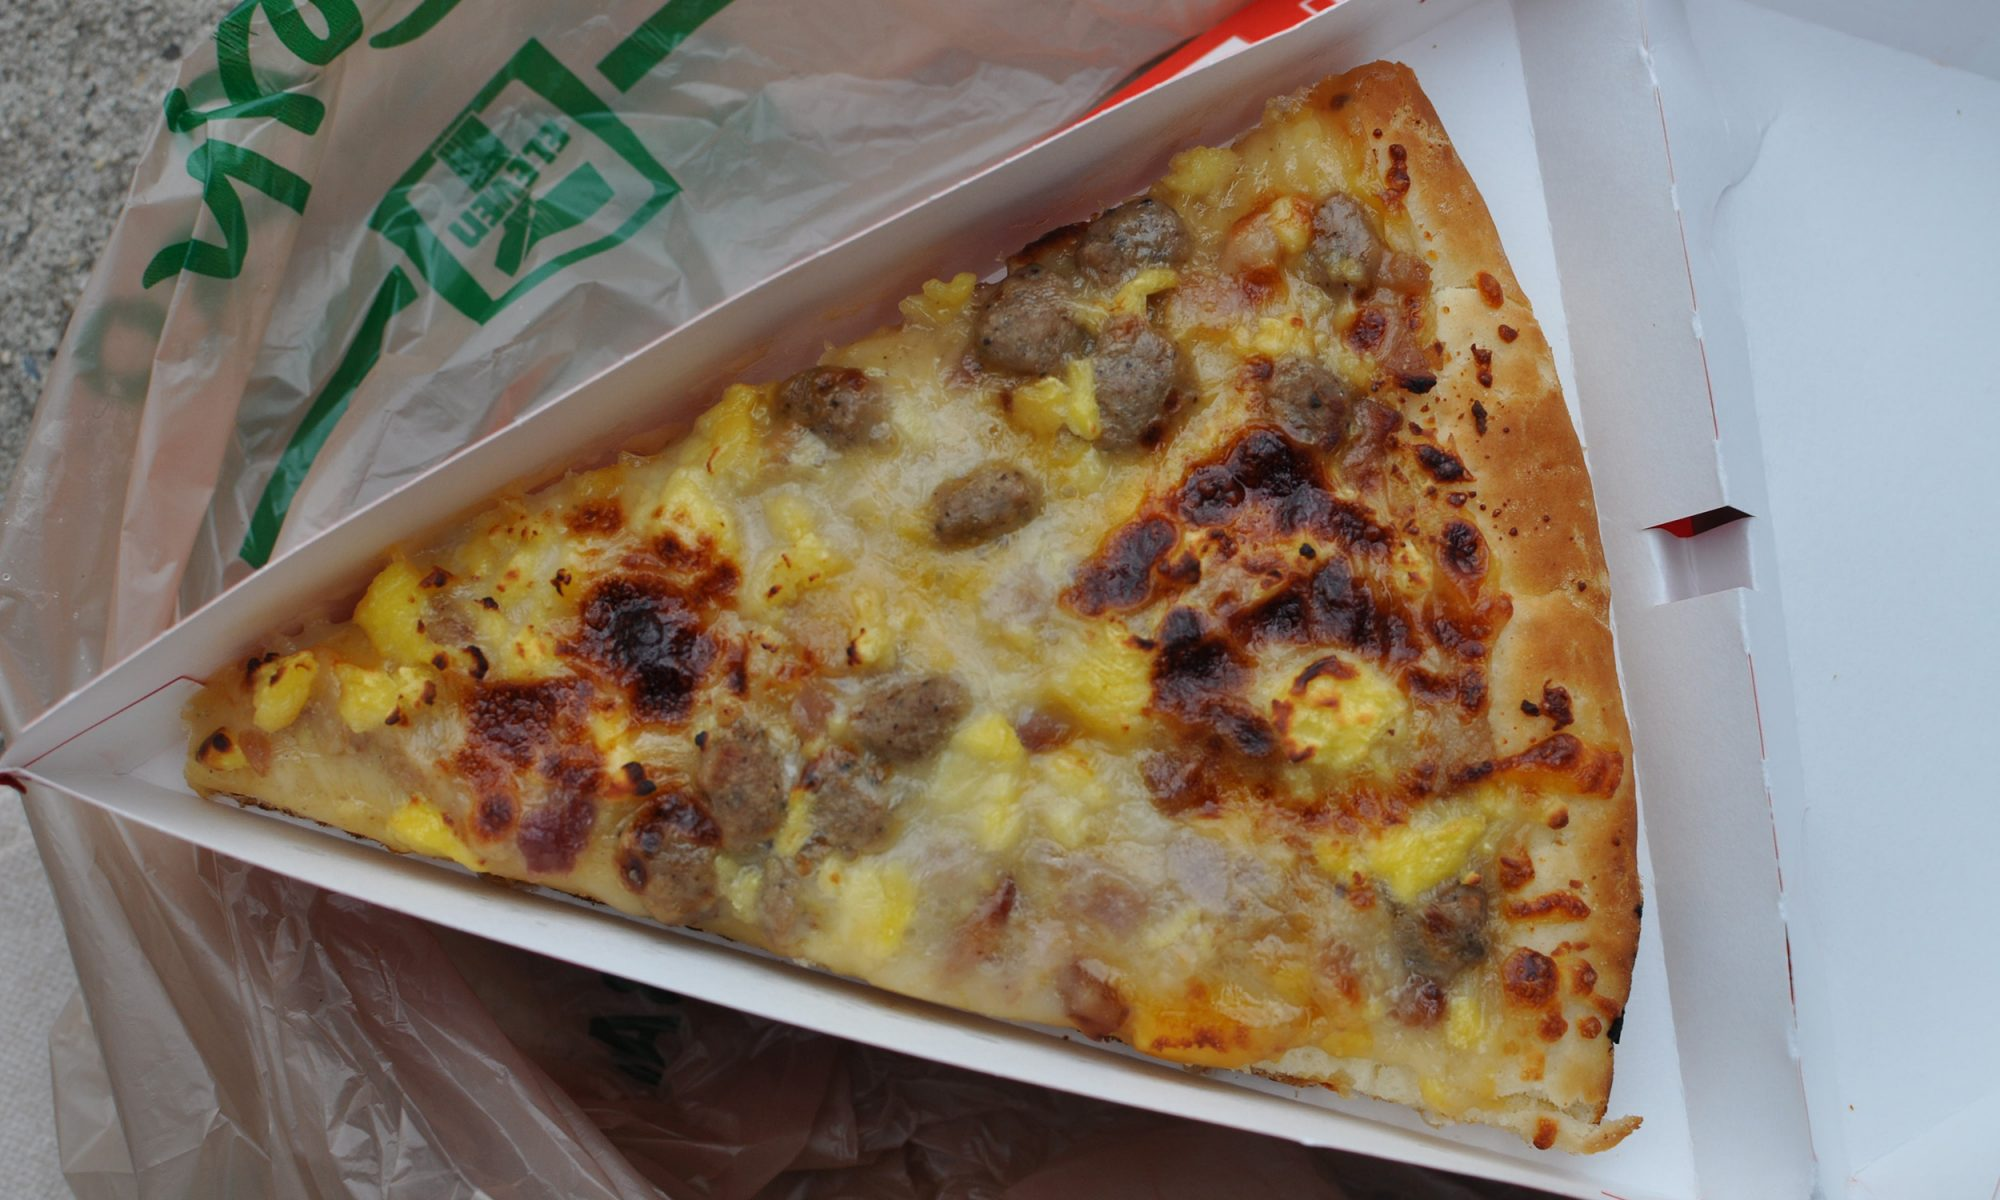 EC: I Tracked Down a 7-Eleven Breakfast Pizza in the Wild and Reviewed It